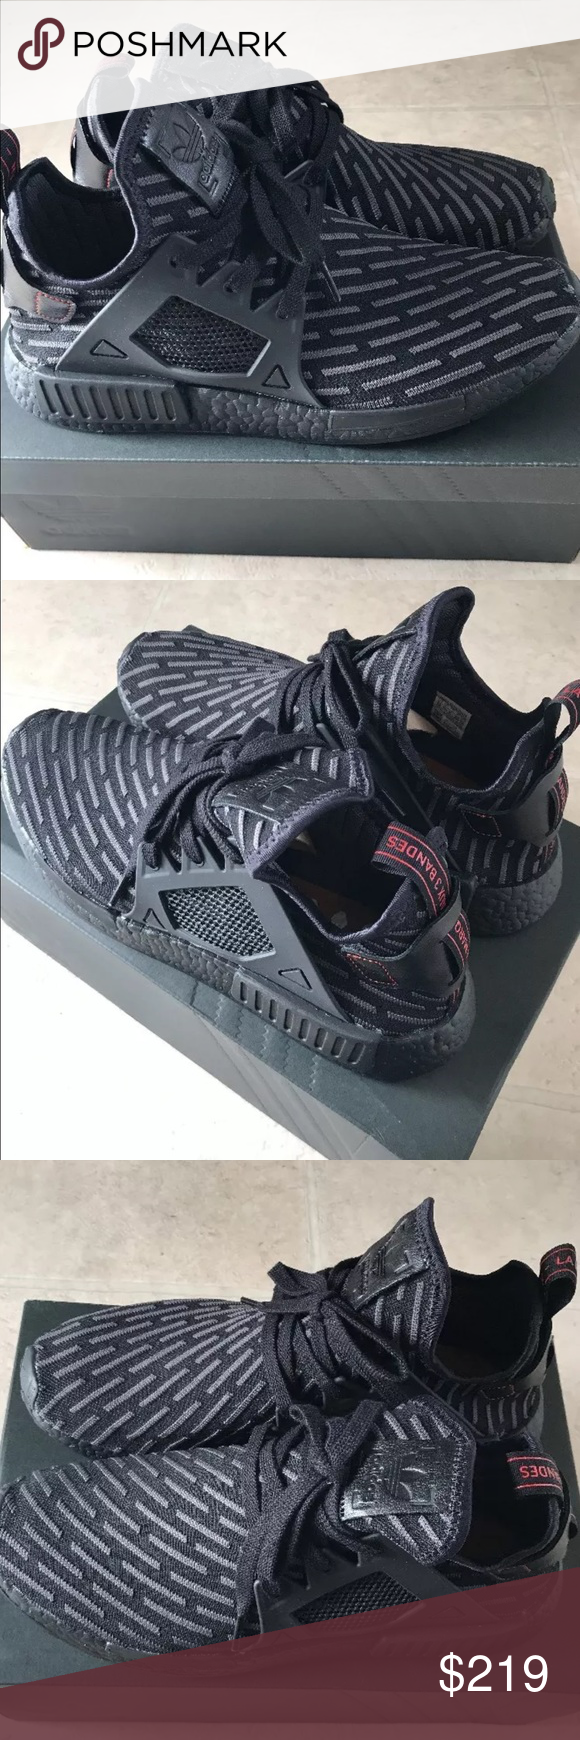 02b9f4b8fe0fd Adidas NMD xr1 pk triple black men size 12 Nmd triple black core red size  12 men authentic 100% from finish line come with original box and receipt  Adidas ...